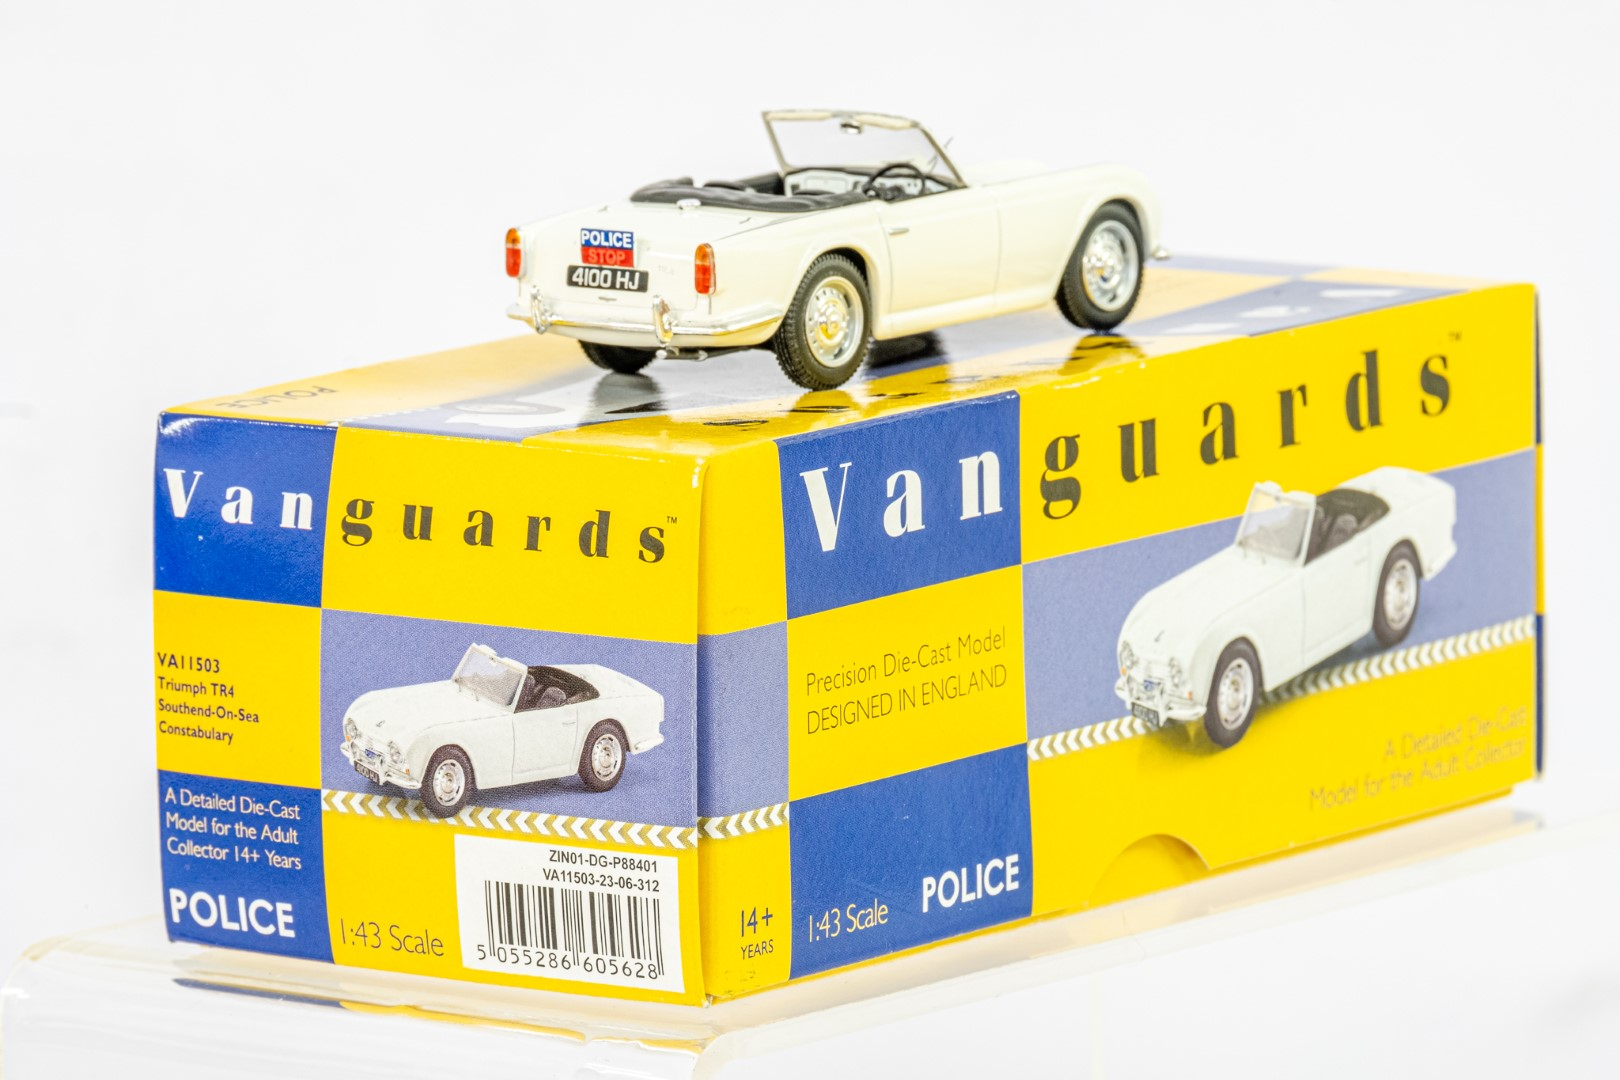 Vanguards Triumph TR4 - Southend On Sea Constabulary - Image 4 of 6